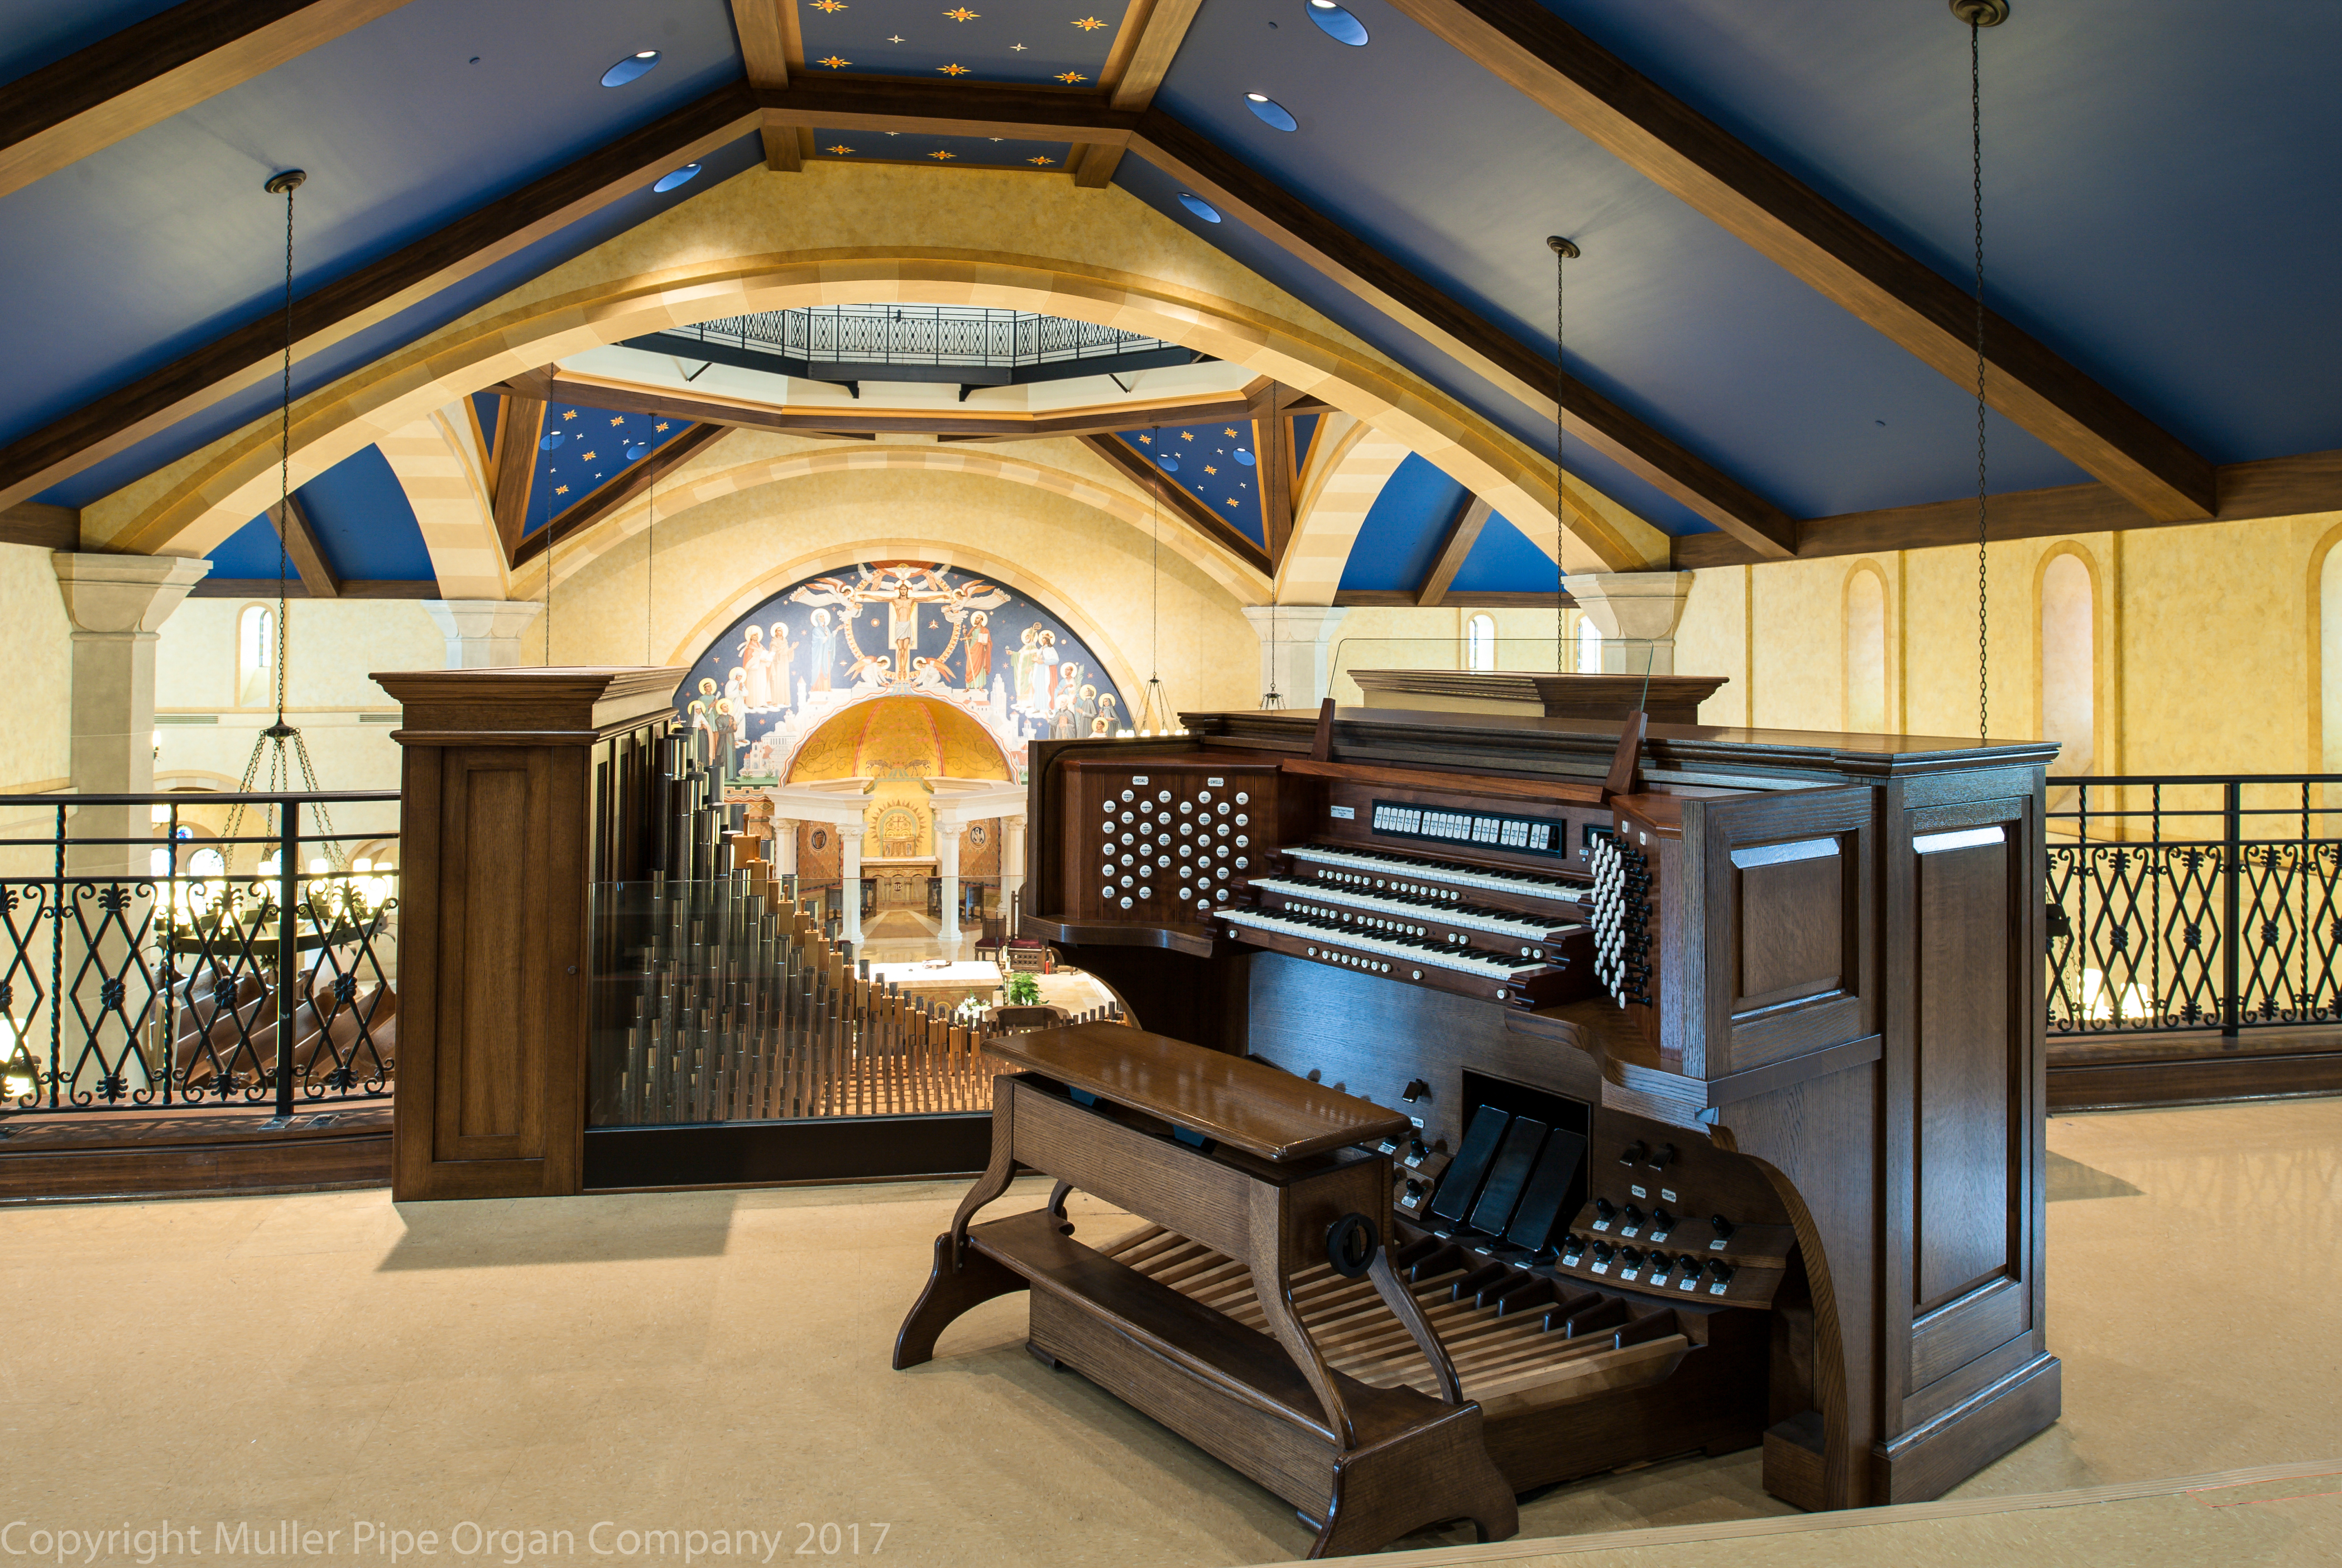 Work by Muller Pipe Organ Co